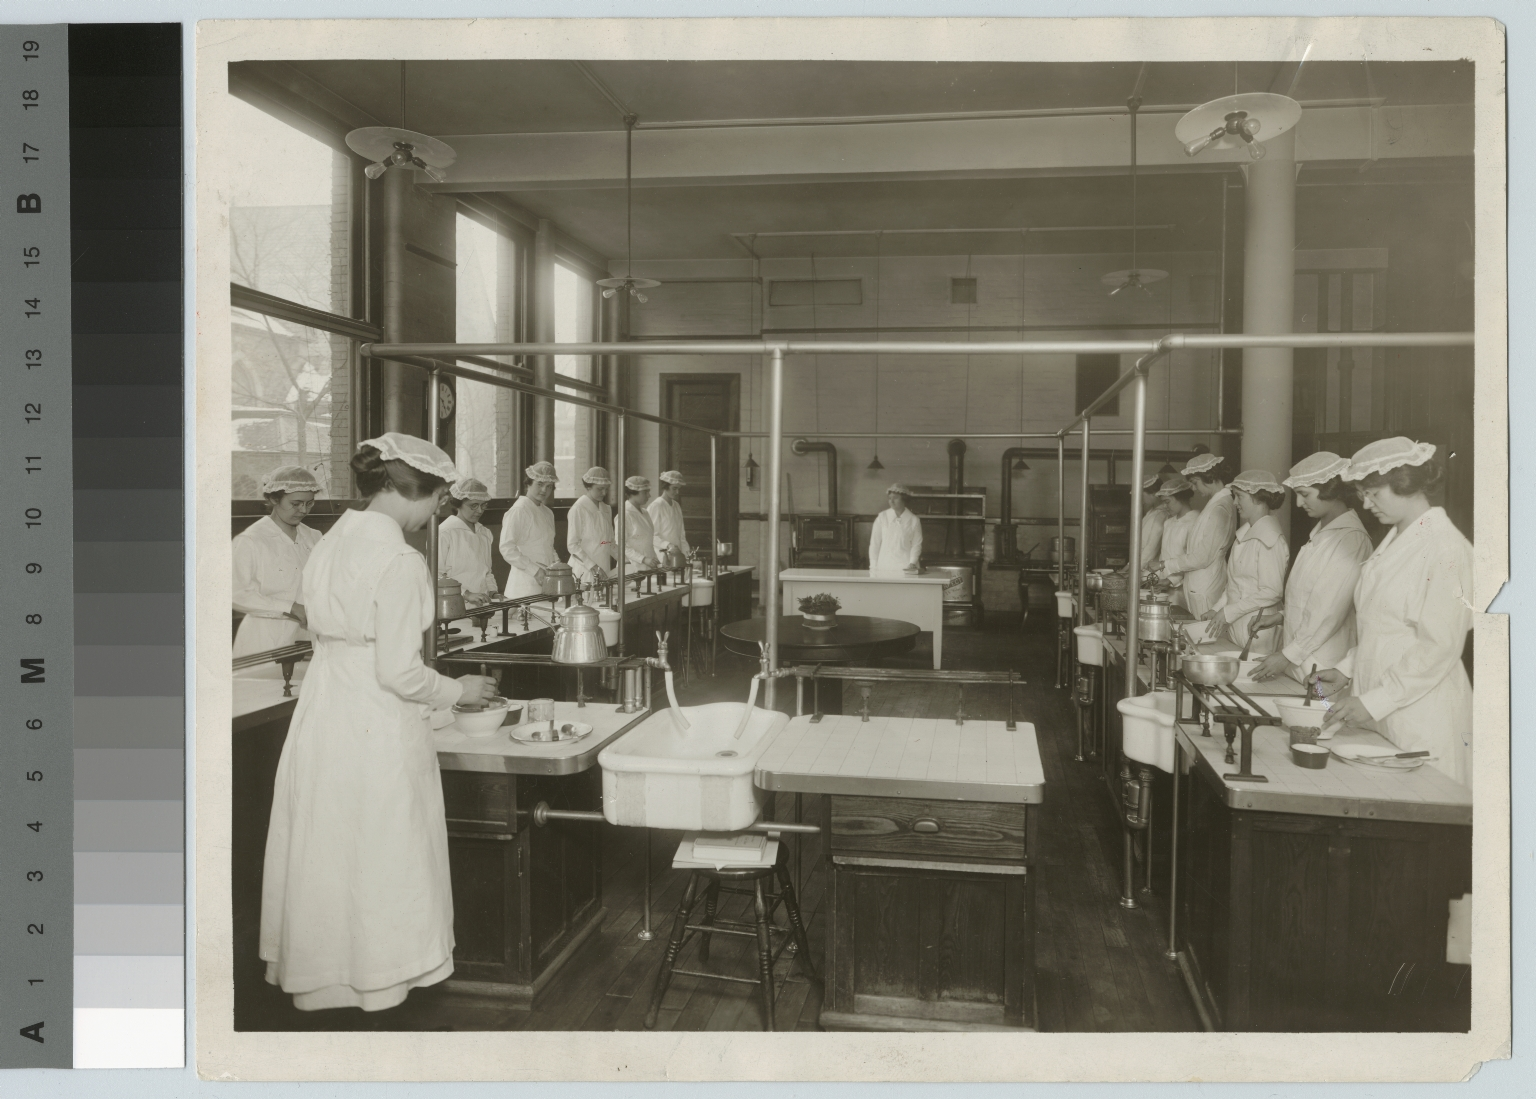 Women in cooking laboratory, Department of Domestic Science and Art, Rochester Athenaeum and Mechanics Institute [1910-1920]